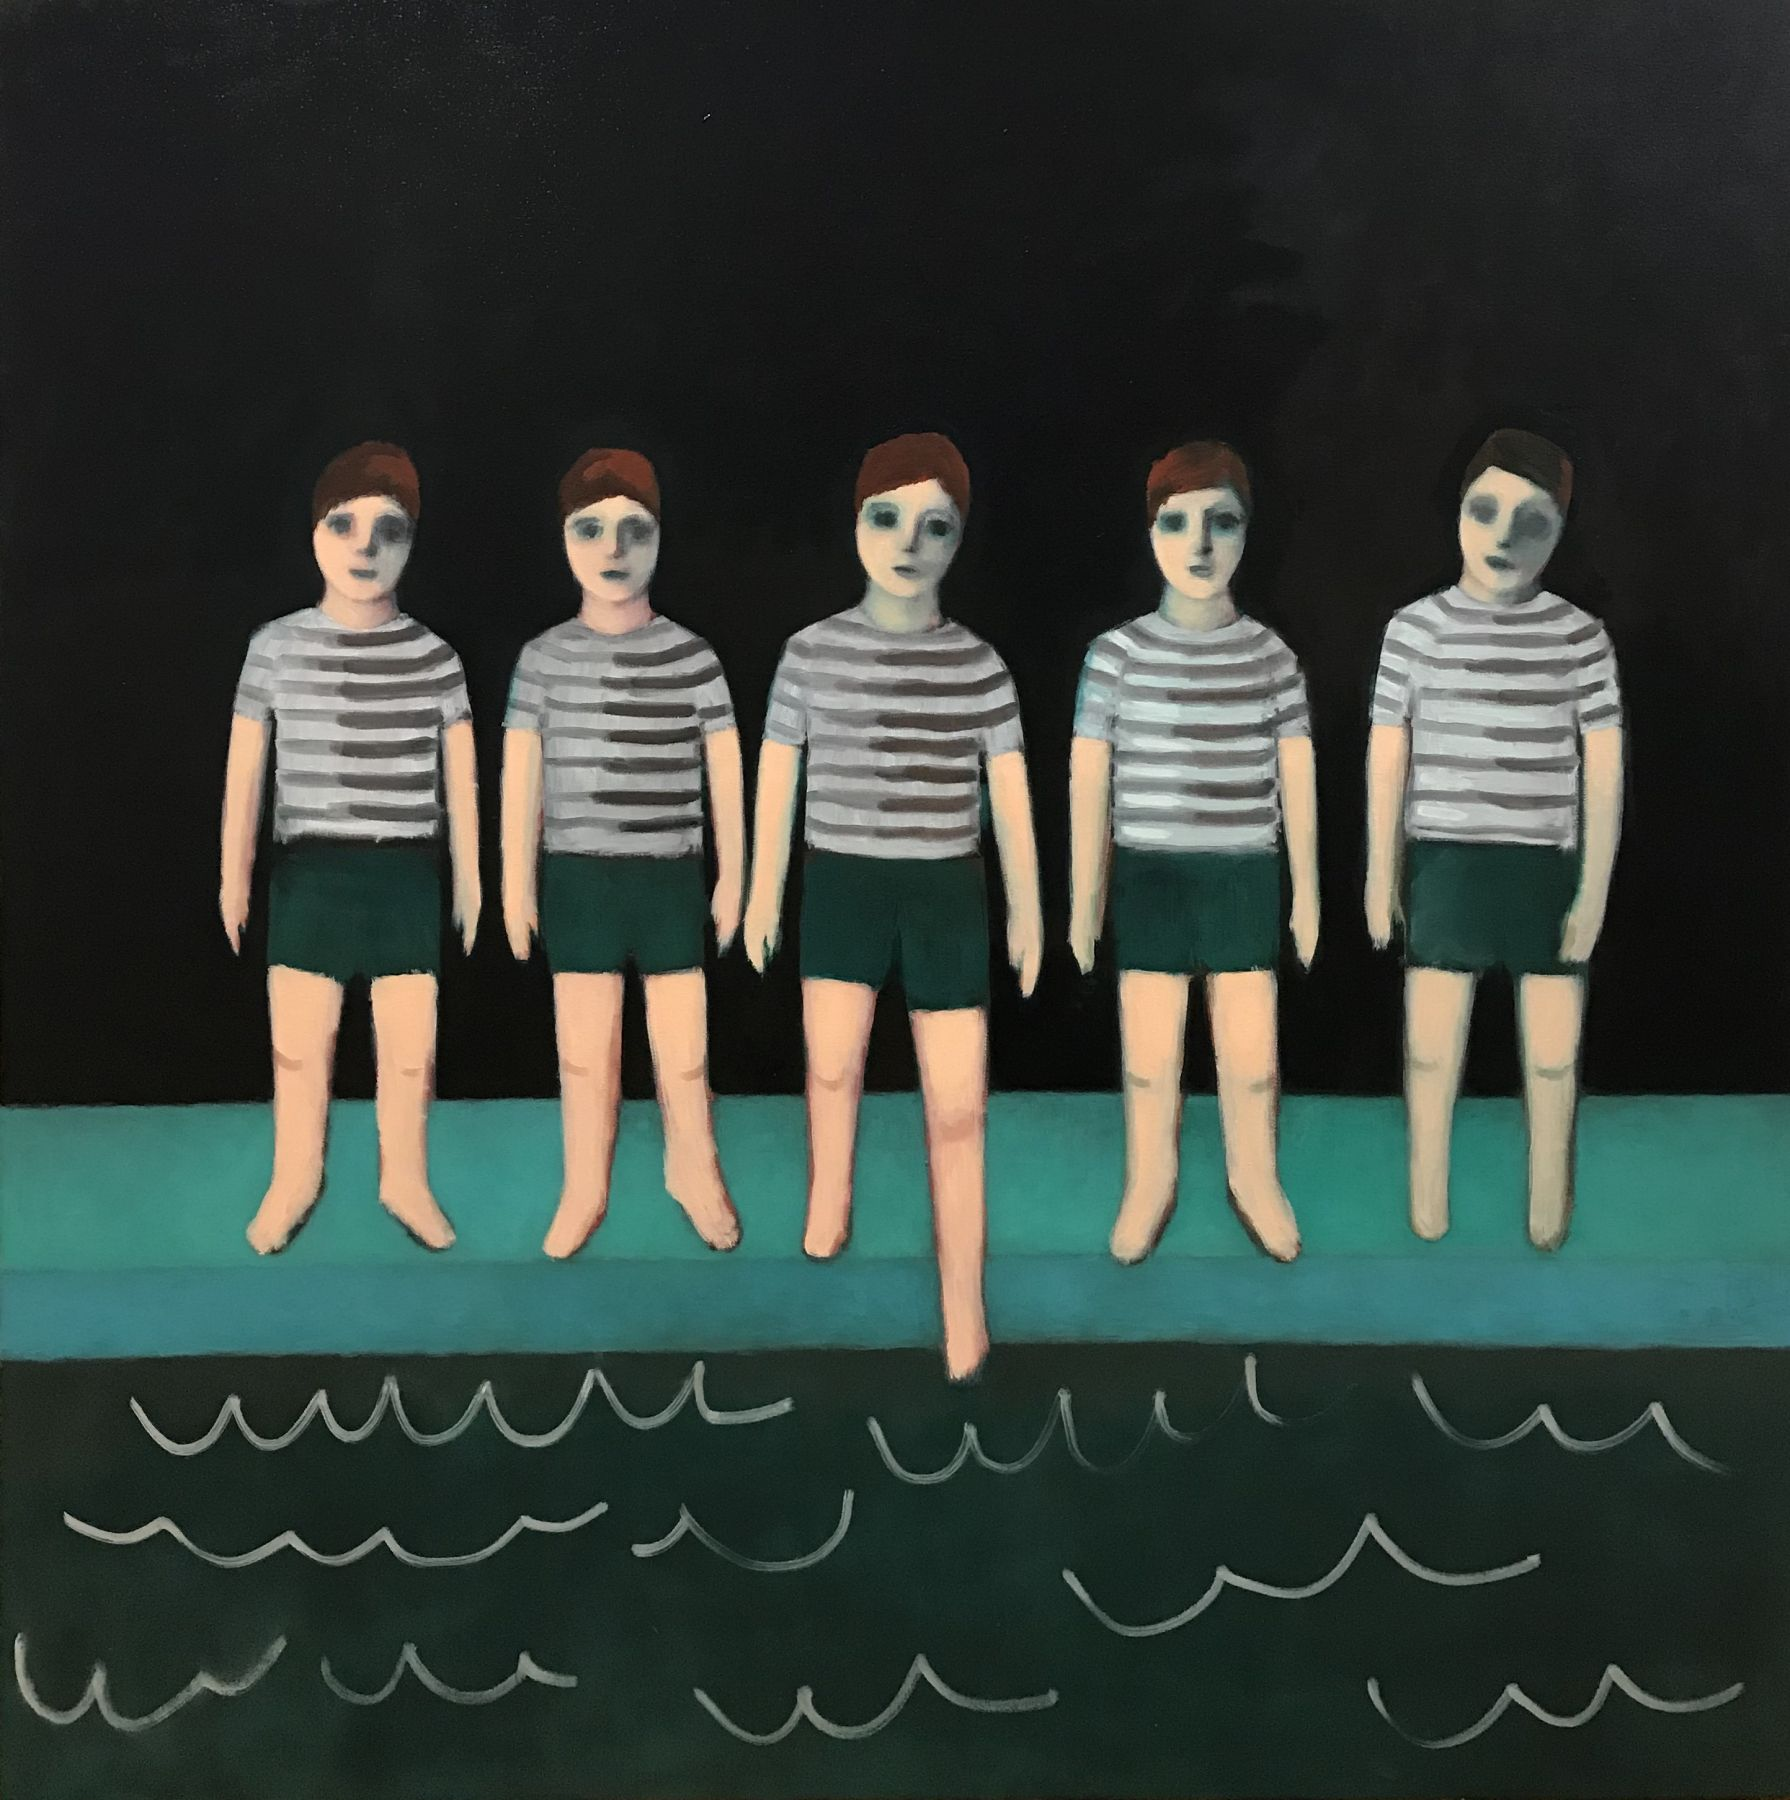 A painting by Ayse Wilson depicting a a group of five school aged boys in striped shirts in front of a swimming pool. The middle boy is dipping his toe in the water